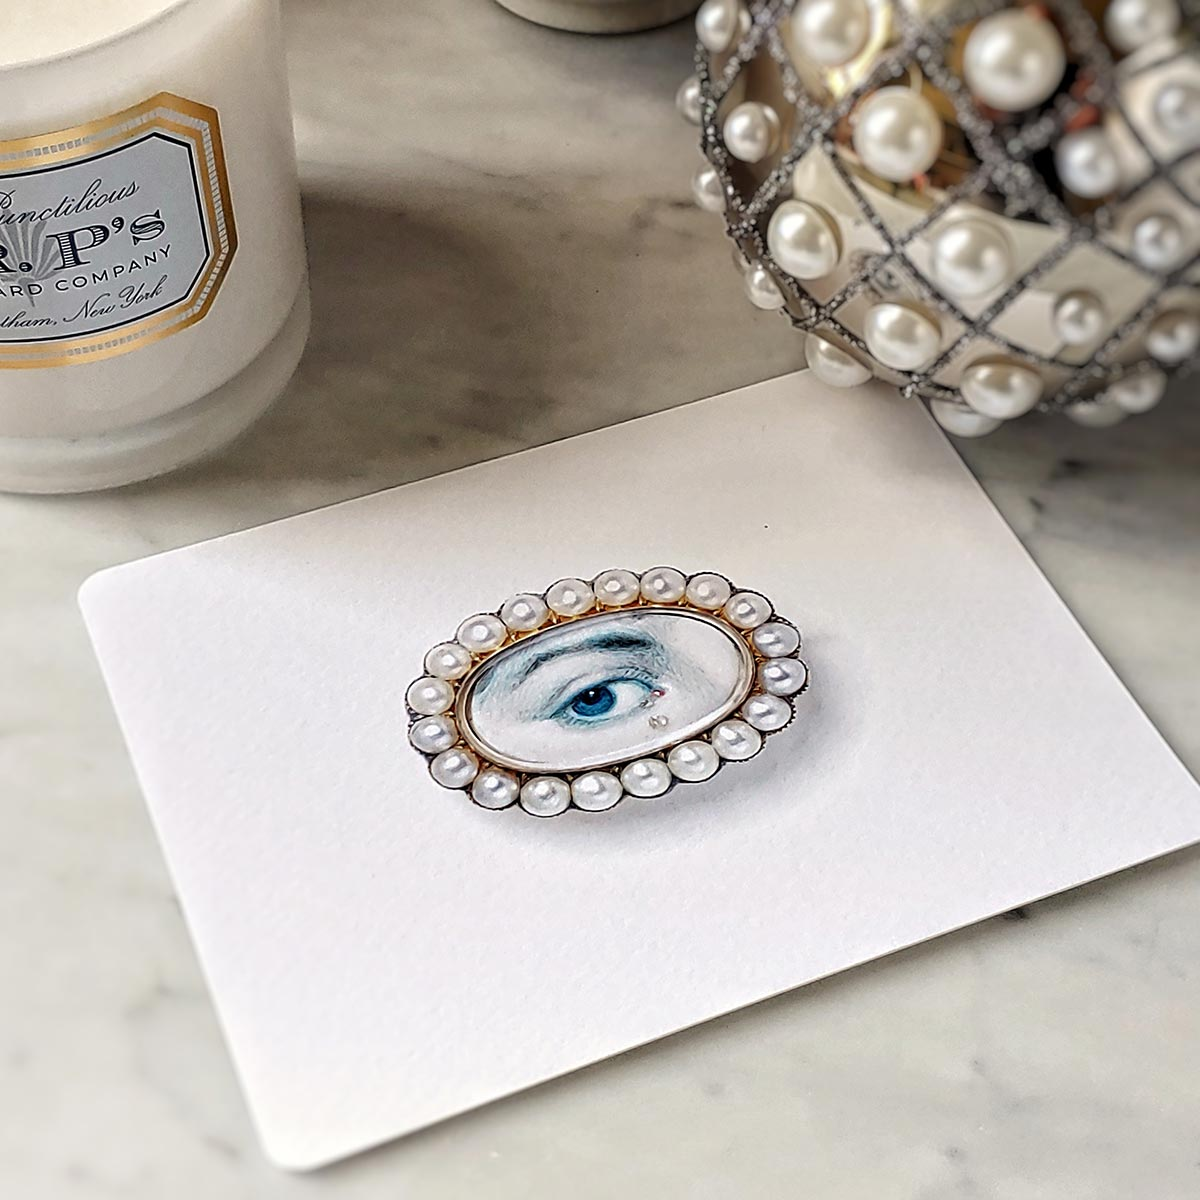 The Punctilious Mr. P's 'lover's eye- pearl' personalized note card